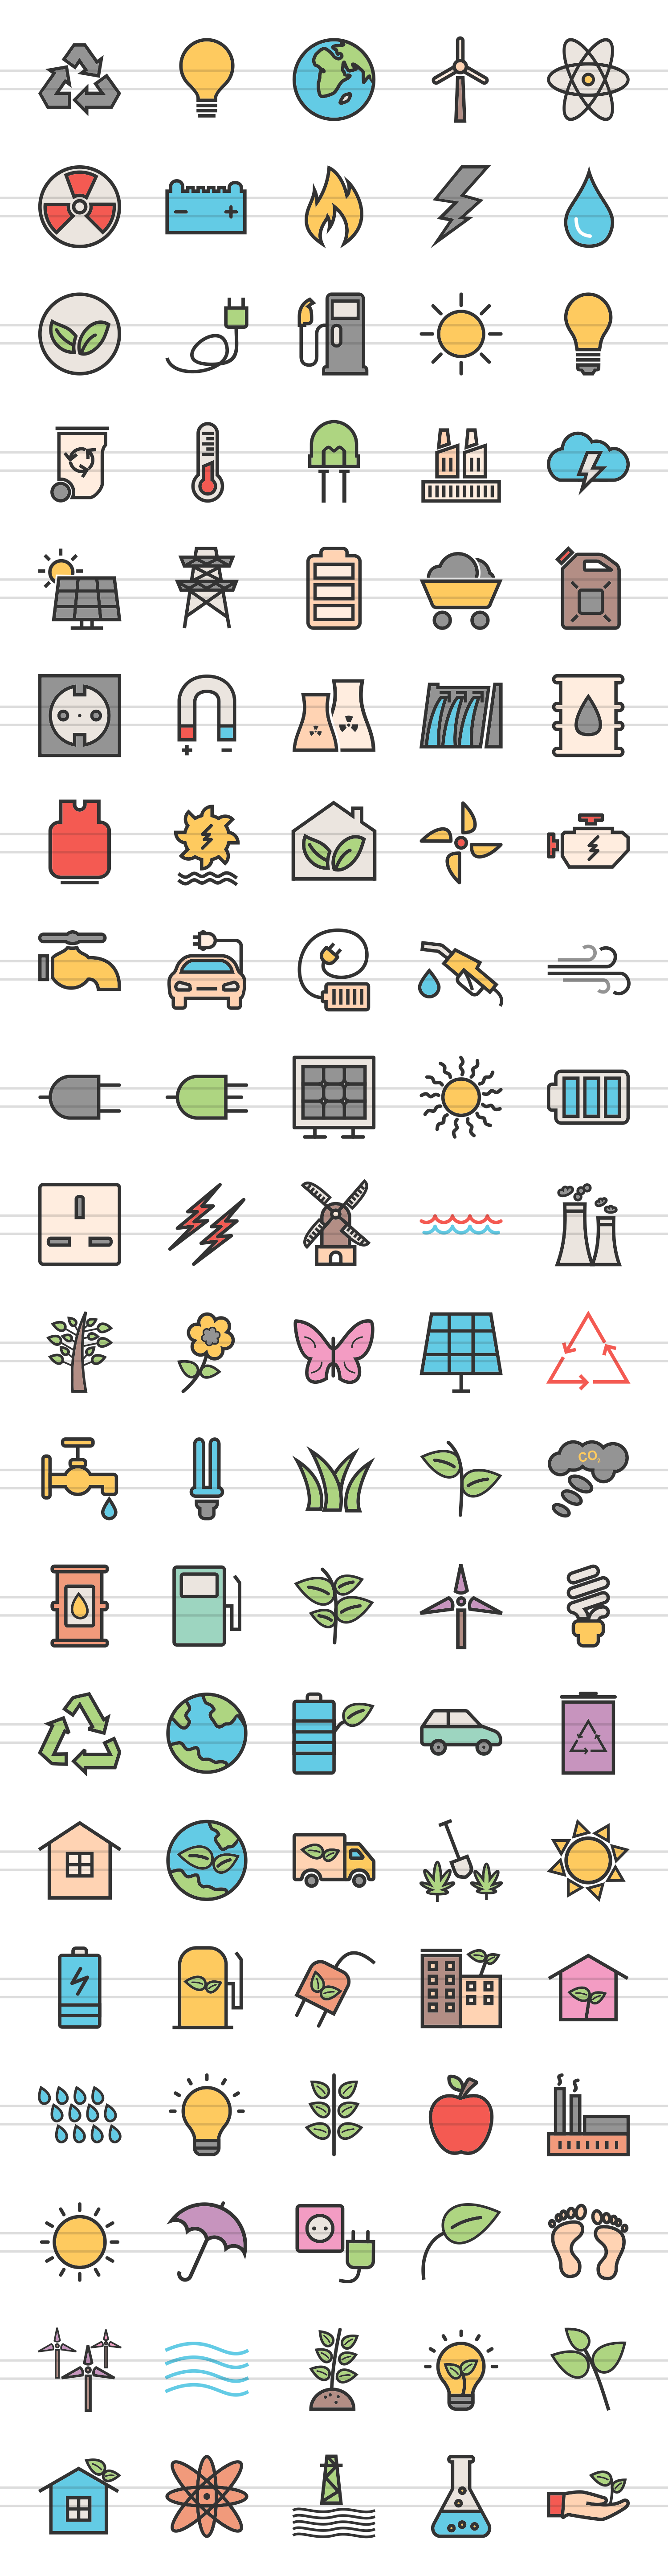 100 Energy Filled Line Icons example image 2